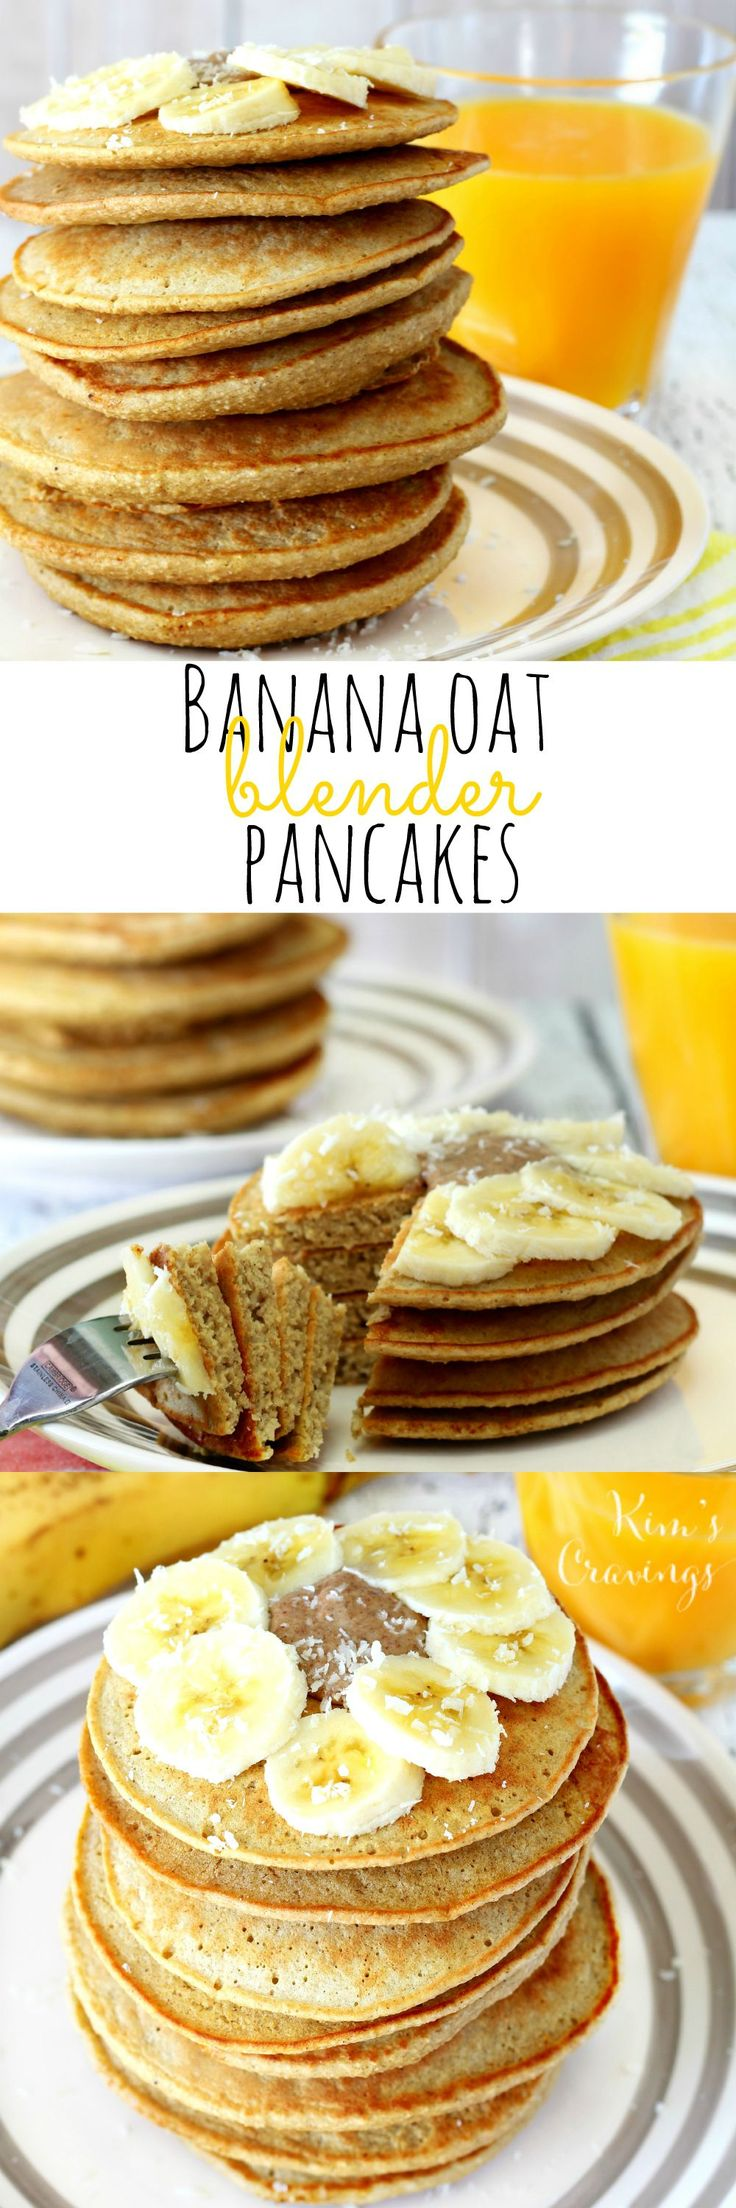 So super easy and yummy- these Banana Oat Blender Pancakes come together in about 5 minutes and are full of nutritious goodness! You'll love them because they're gluten-free, dairy-free and free of re